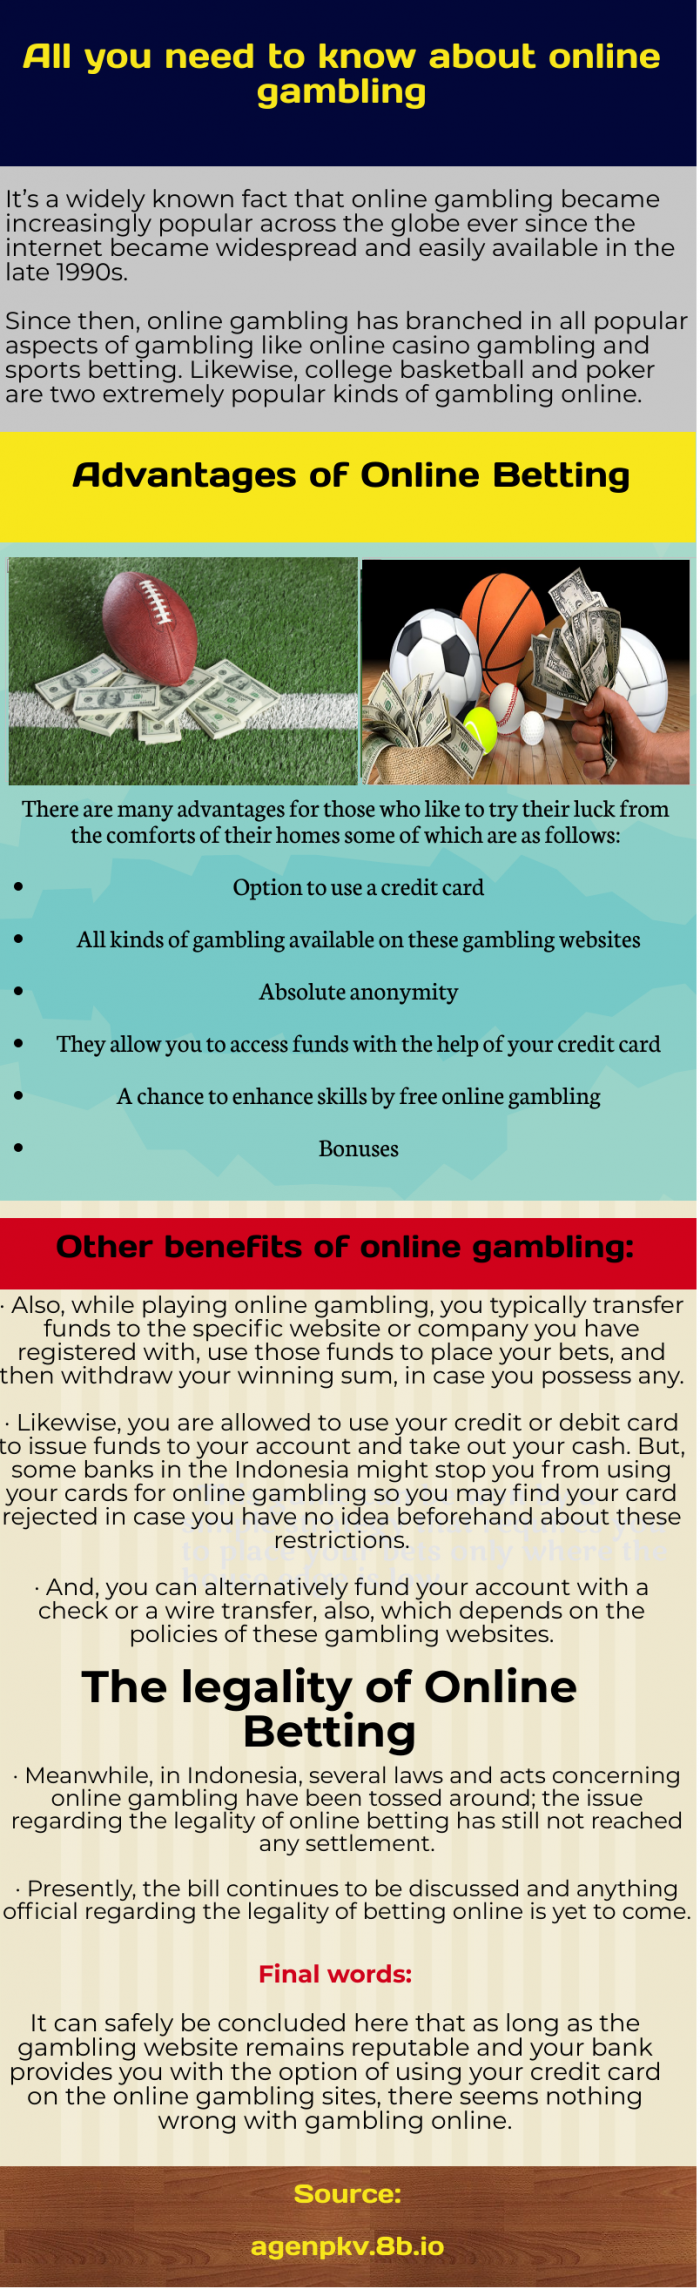 Expert views on the advantages of online gambling